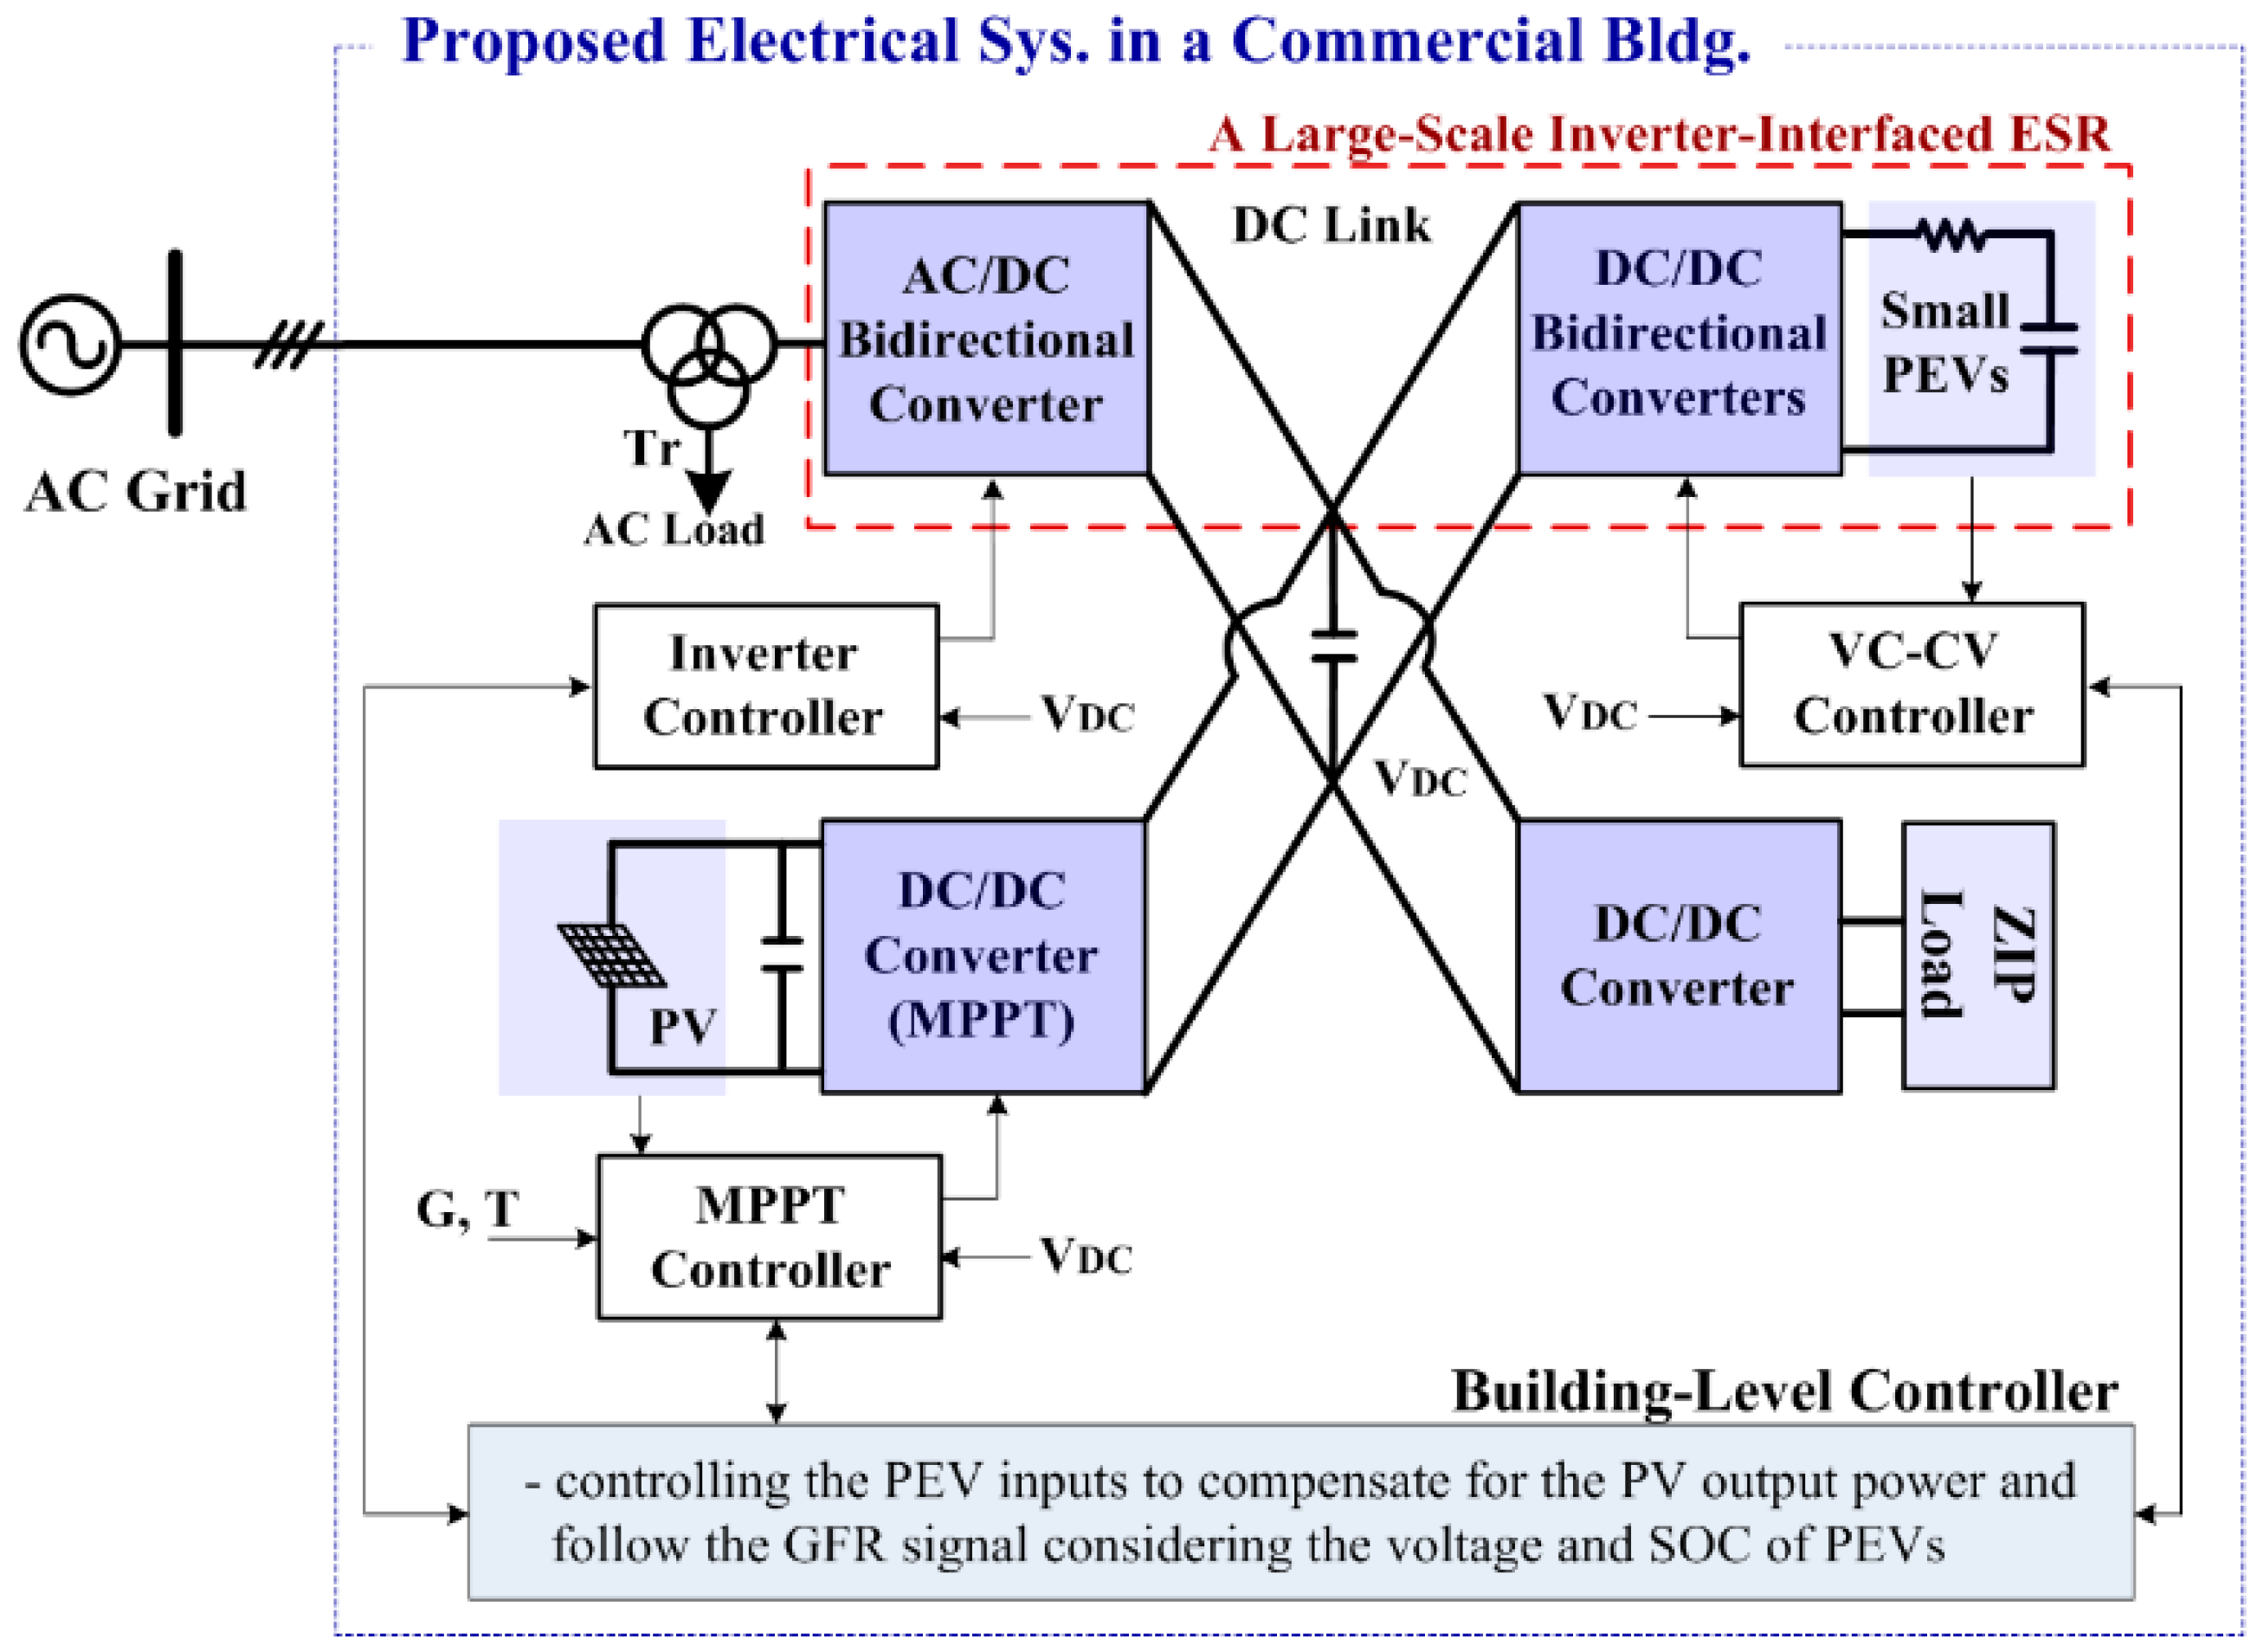 Energies Free Full Text Modeling And Analysis Of A Dc Electrical Buildaisolateddcdcconvertercircuitdiagrampng 10 00427 G001 Figure 1 Simplified Schematic Diagram The Proposed